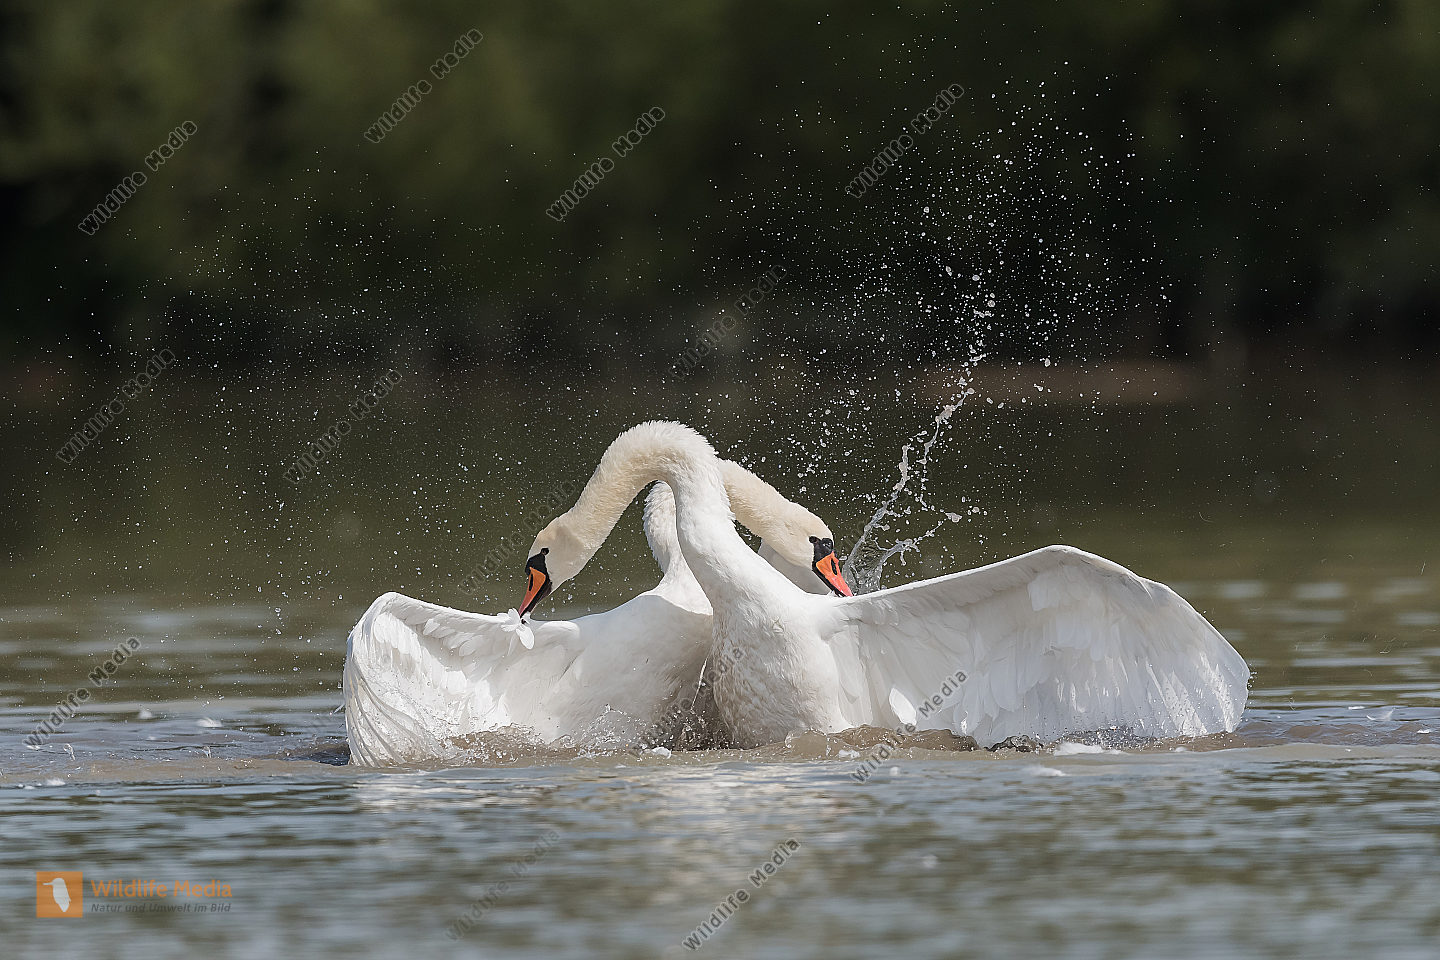 Hoeckerschwan Cygnus olor Mute Swan kämpfend fighting